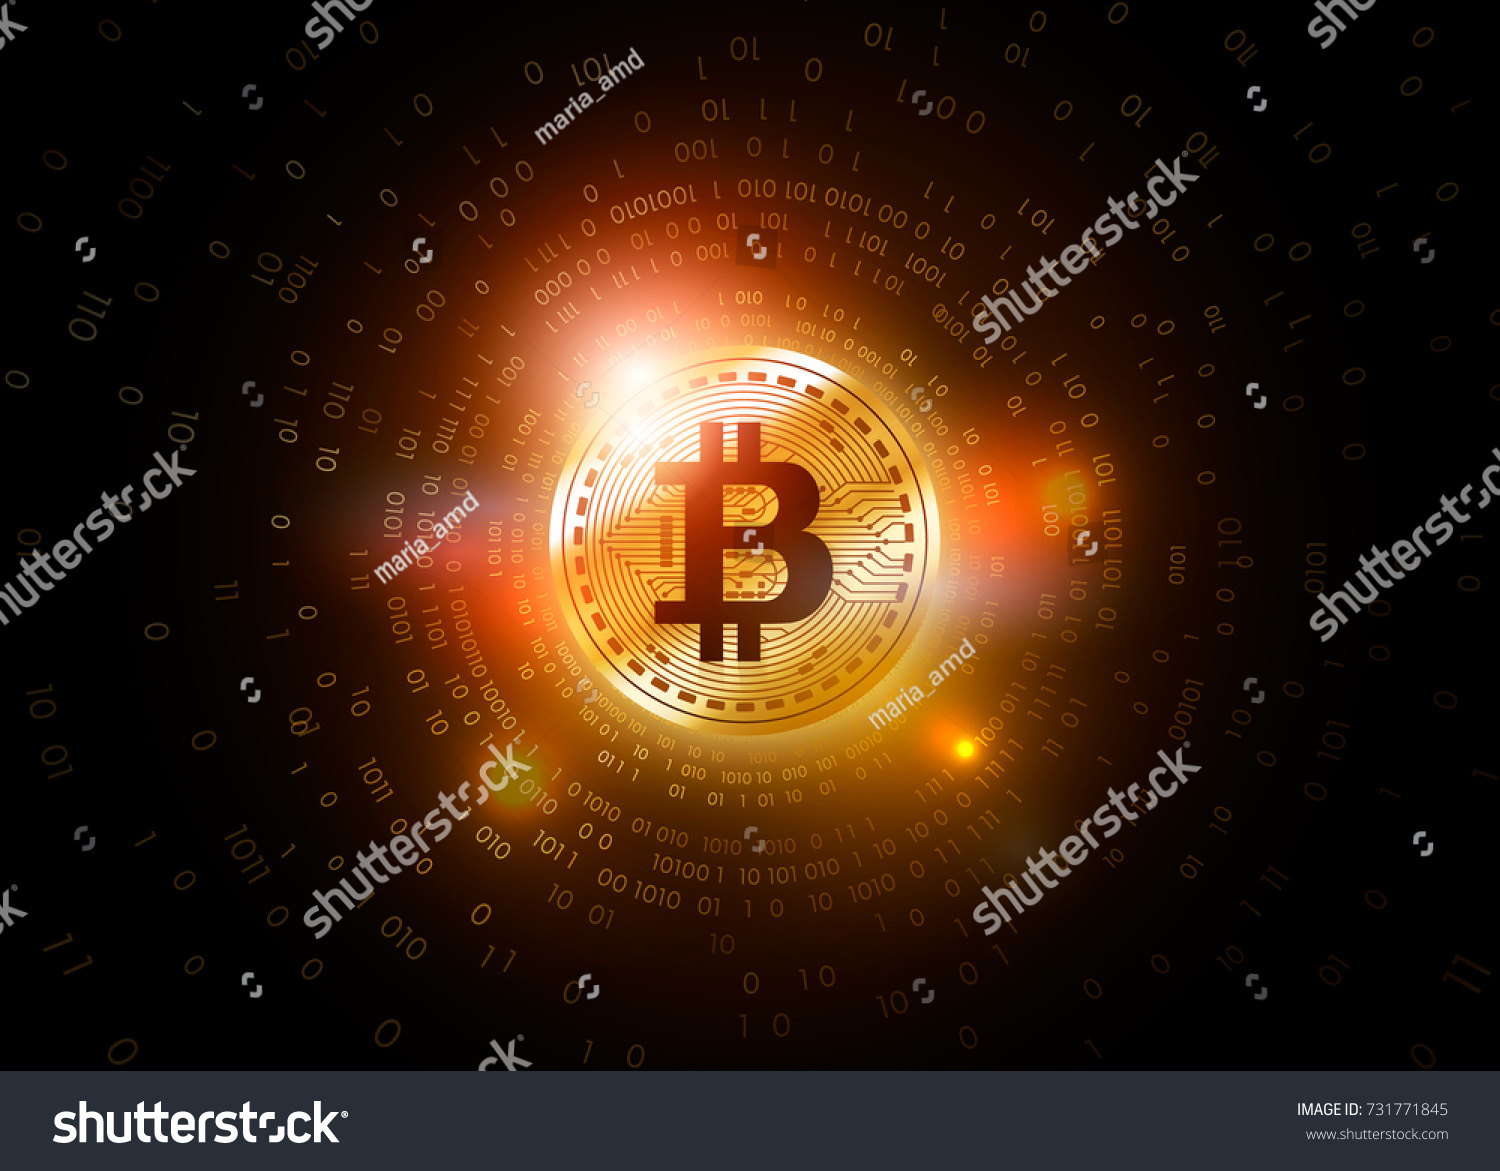 Gold Bit Coin Digital Currency Cryptogram Stock Vector Royalty Free Money Concept Circuit Board With State Bank Futuristic Technology Worldwide Network